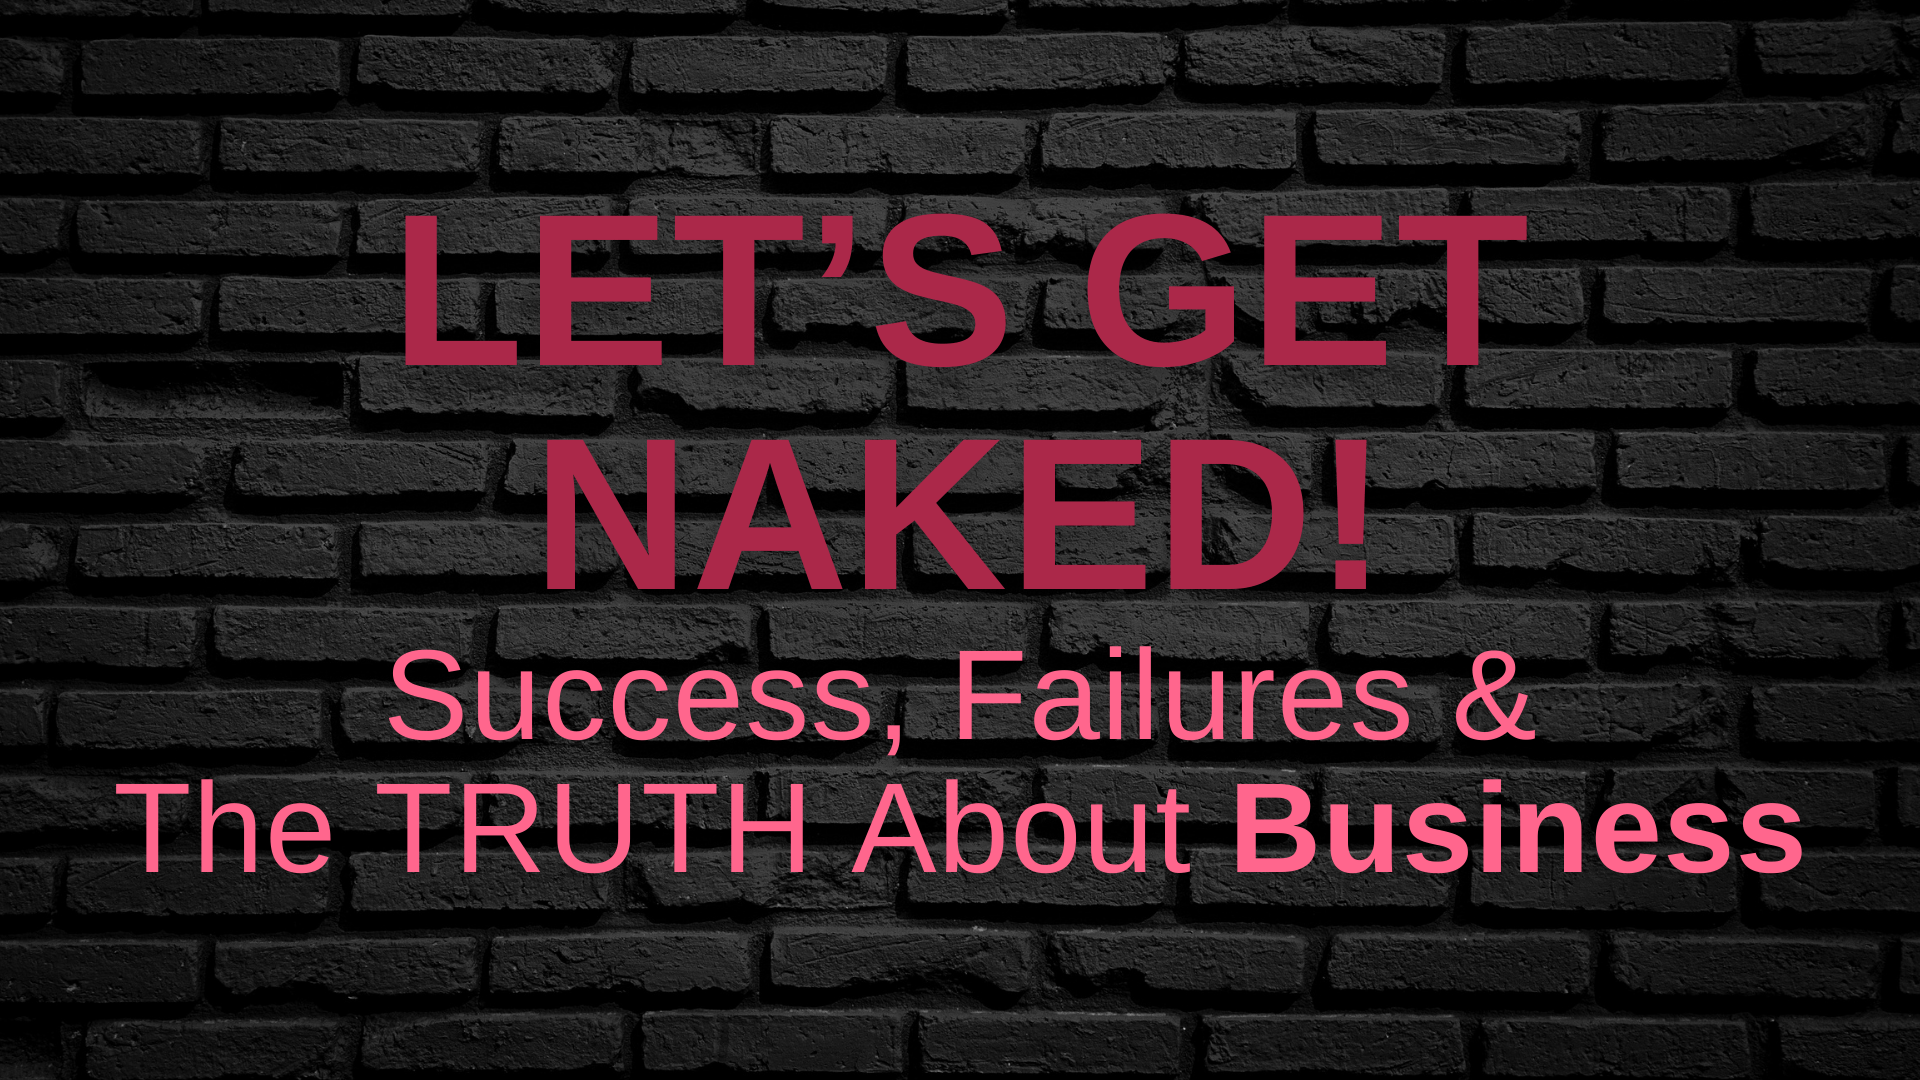 Let's Get Naked....Success, Failures and the Truth About Business - blacknet